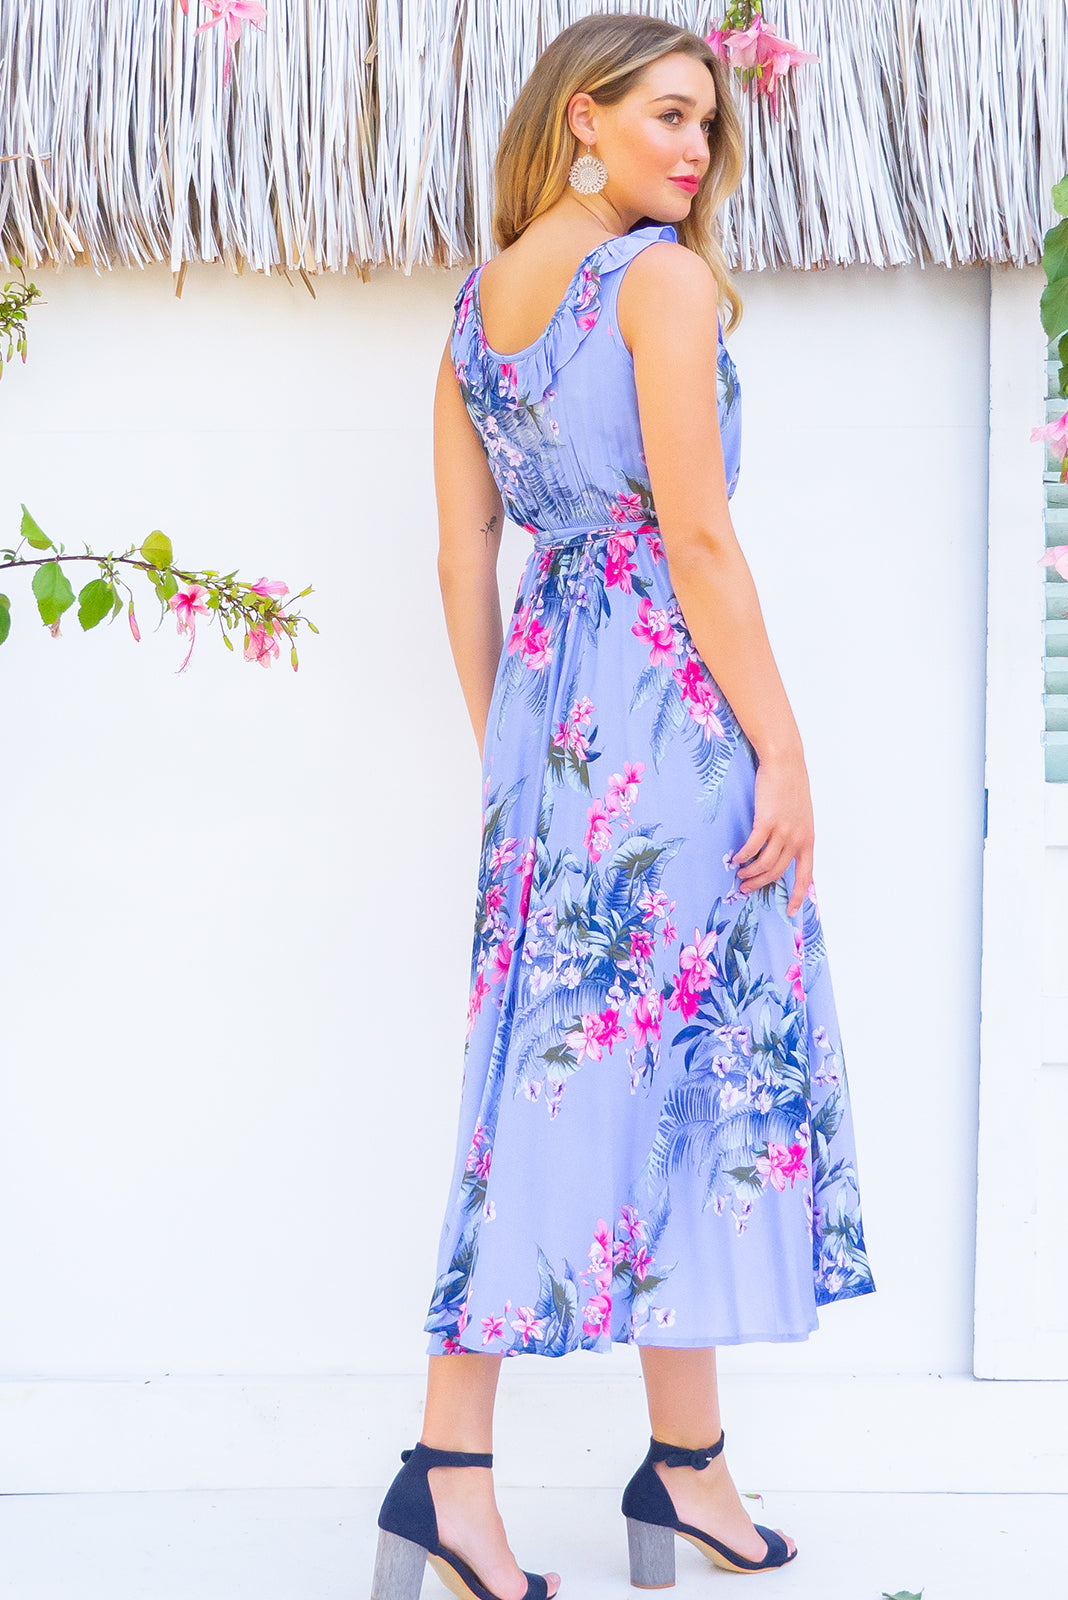 Pablo Periwinkle blue Wrap Dress features a flattering wrap around shape, sleeveless bodice with a frill and comes in a bright periwinkle blue based tropical floral print on rayon woven fabric